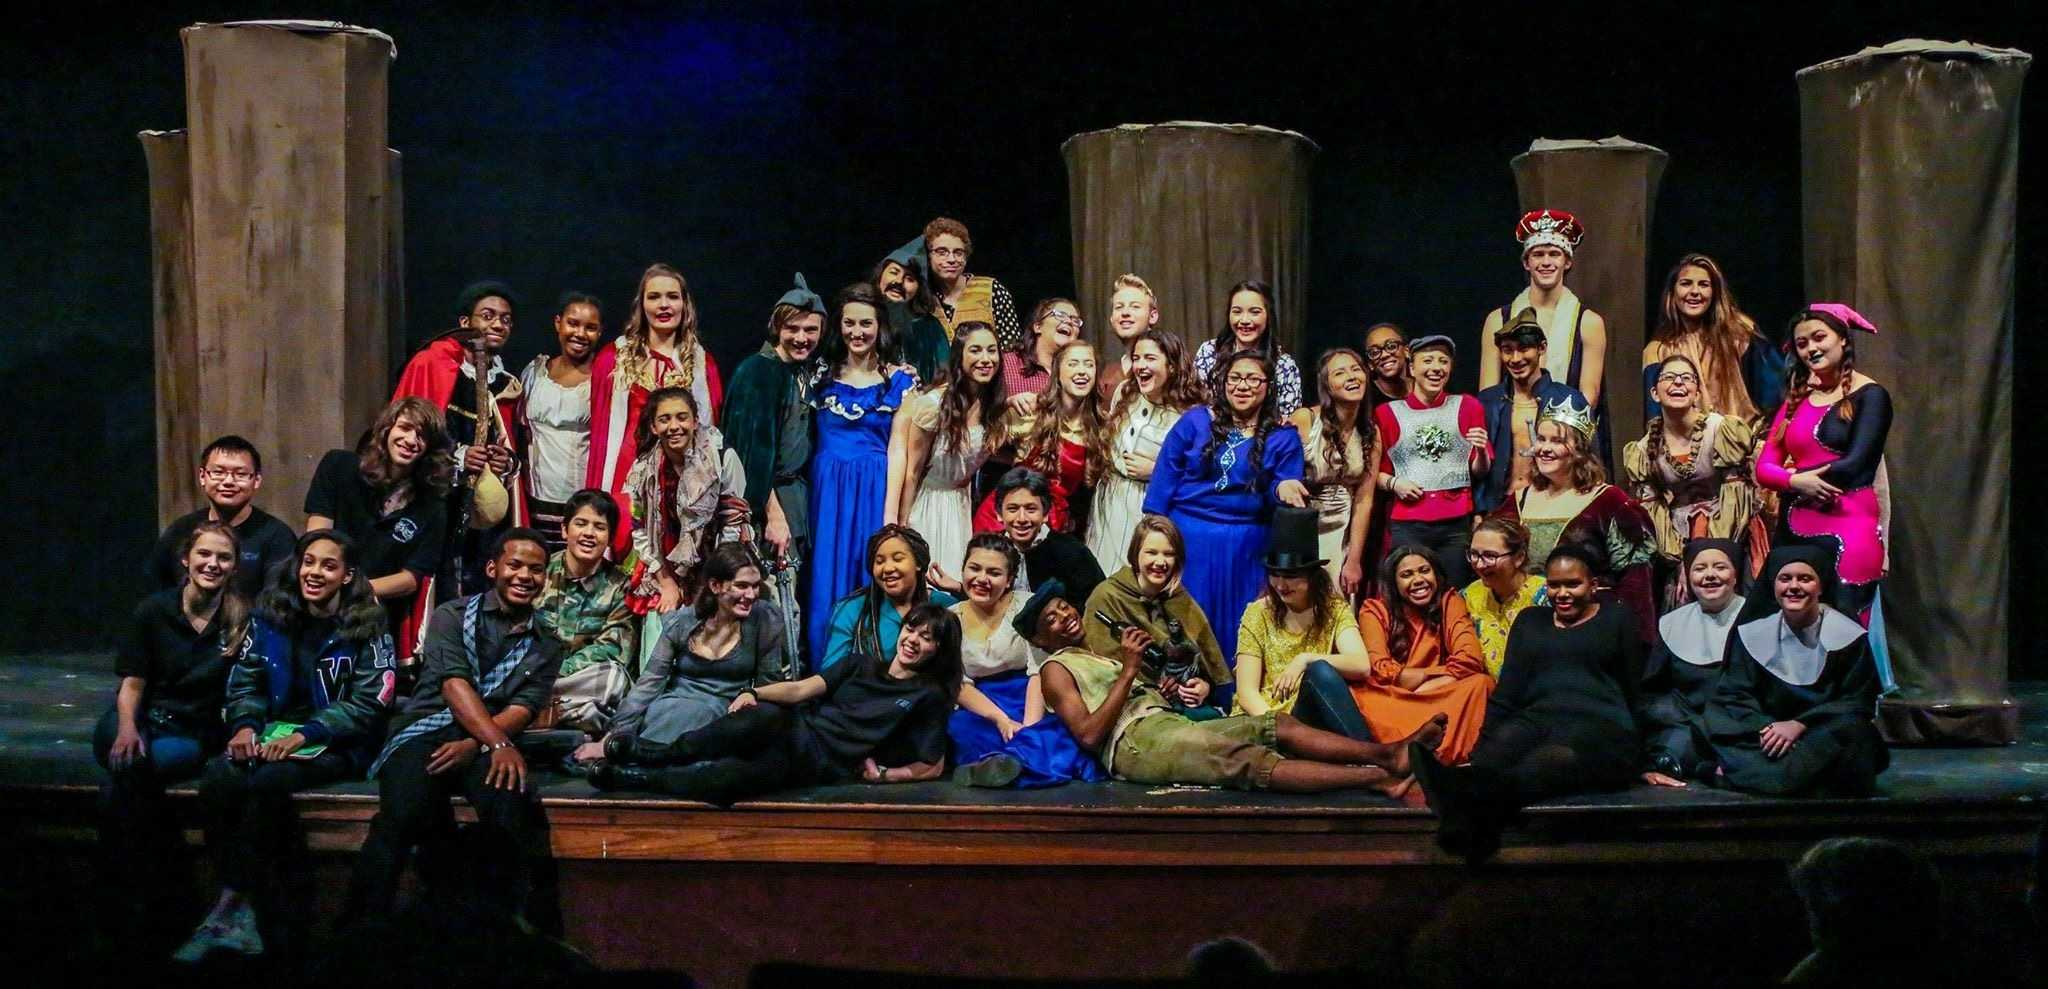 The cast of Robinhood: 2015-16! Taken by Joe Center, a photographer and proud T-Pro parent.